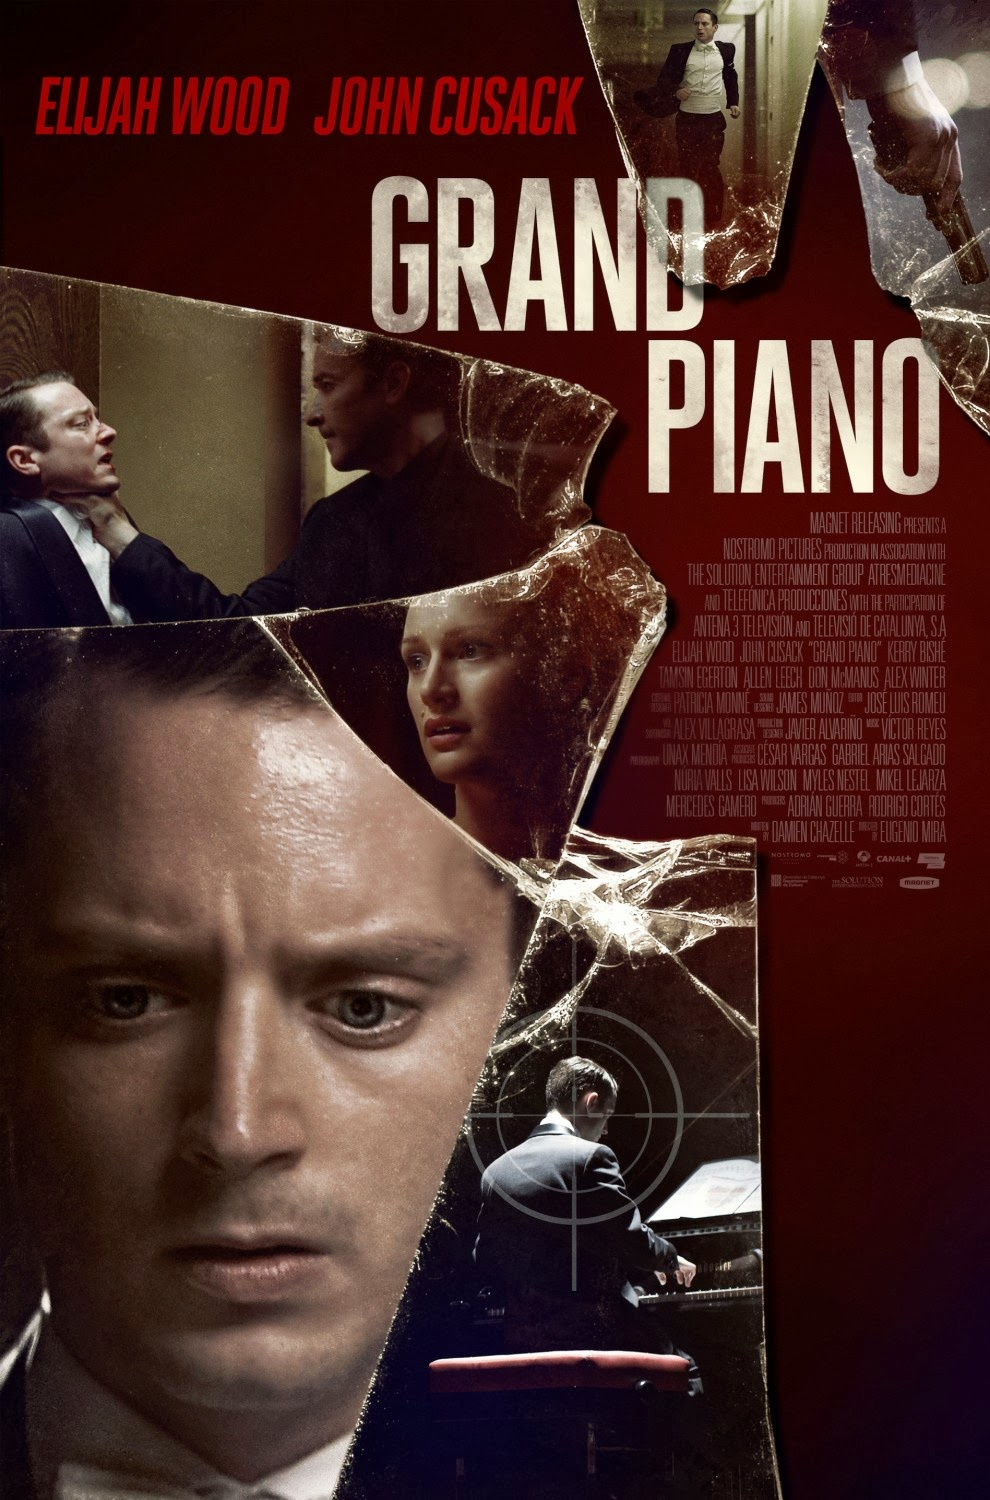 horror 101 with dr ac grand piano 2013 movie review